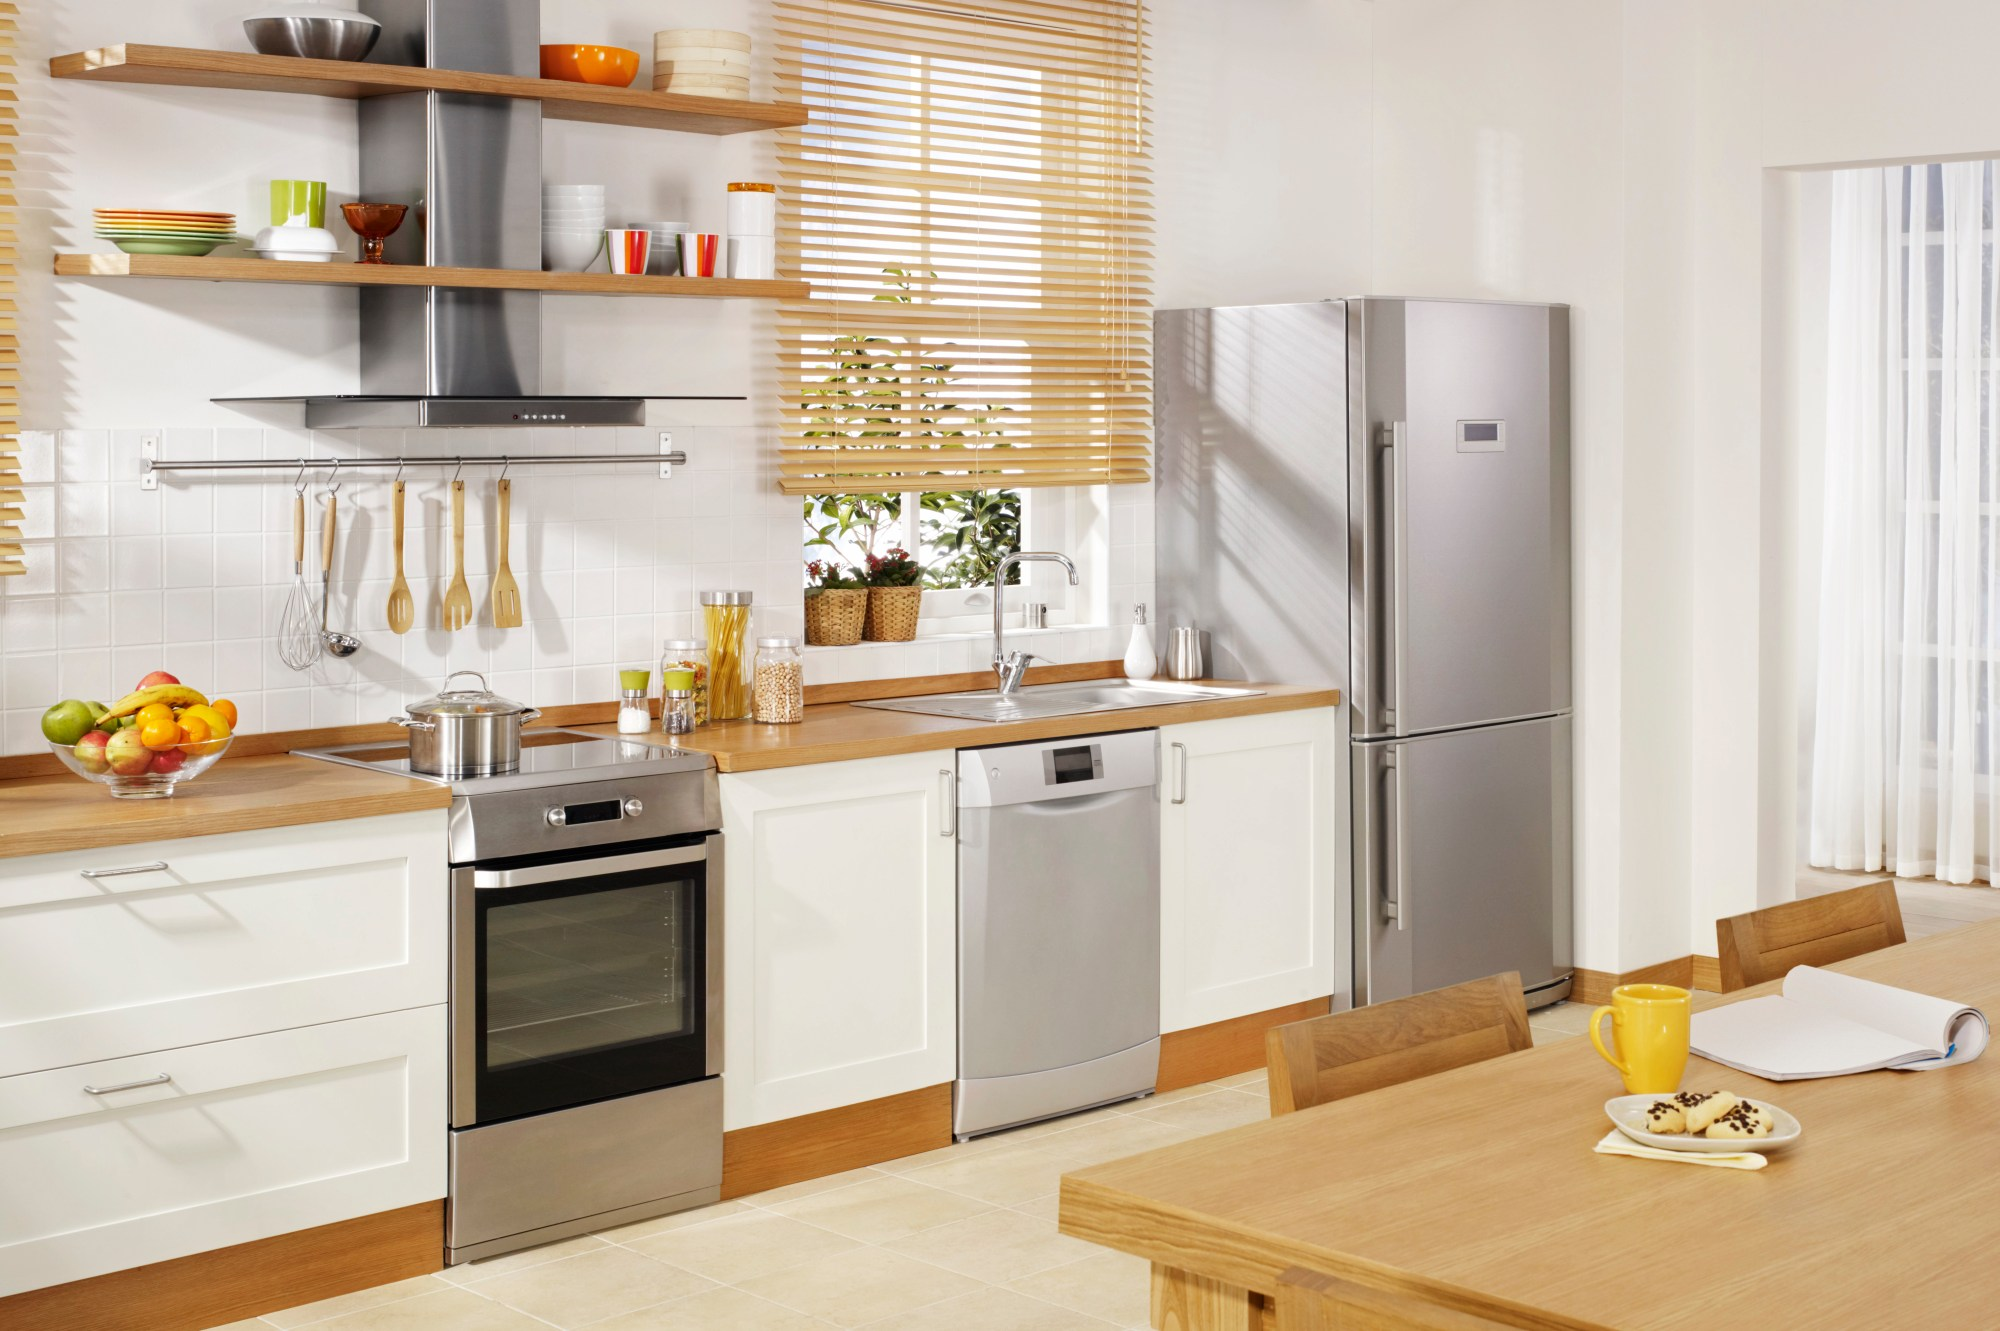 hight resolution of how to install a dishwasher in old kitchen cabinets